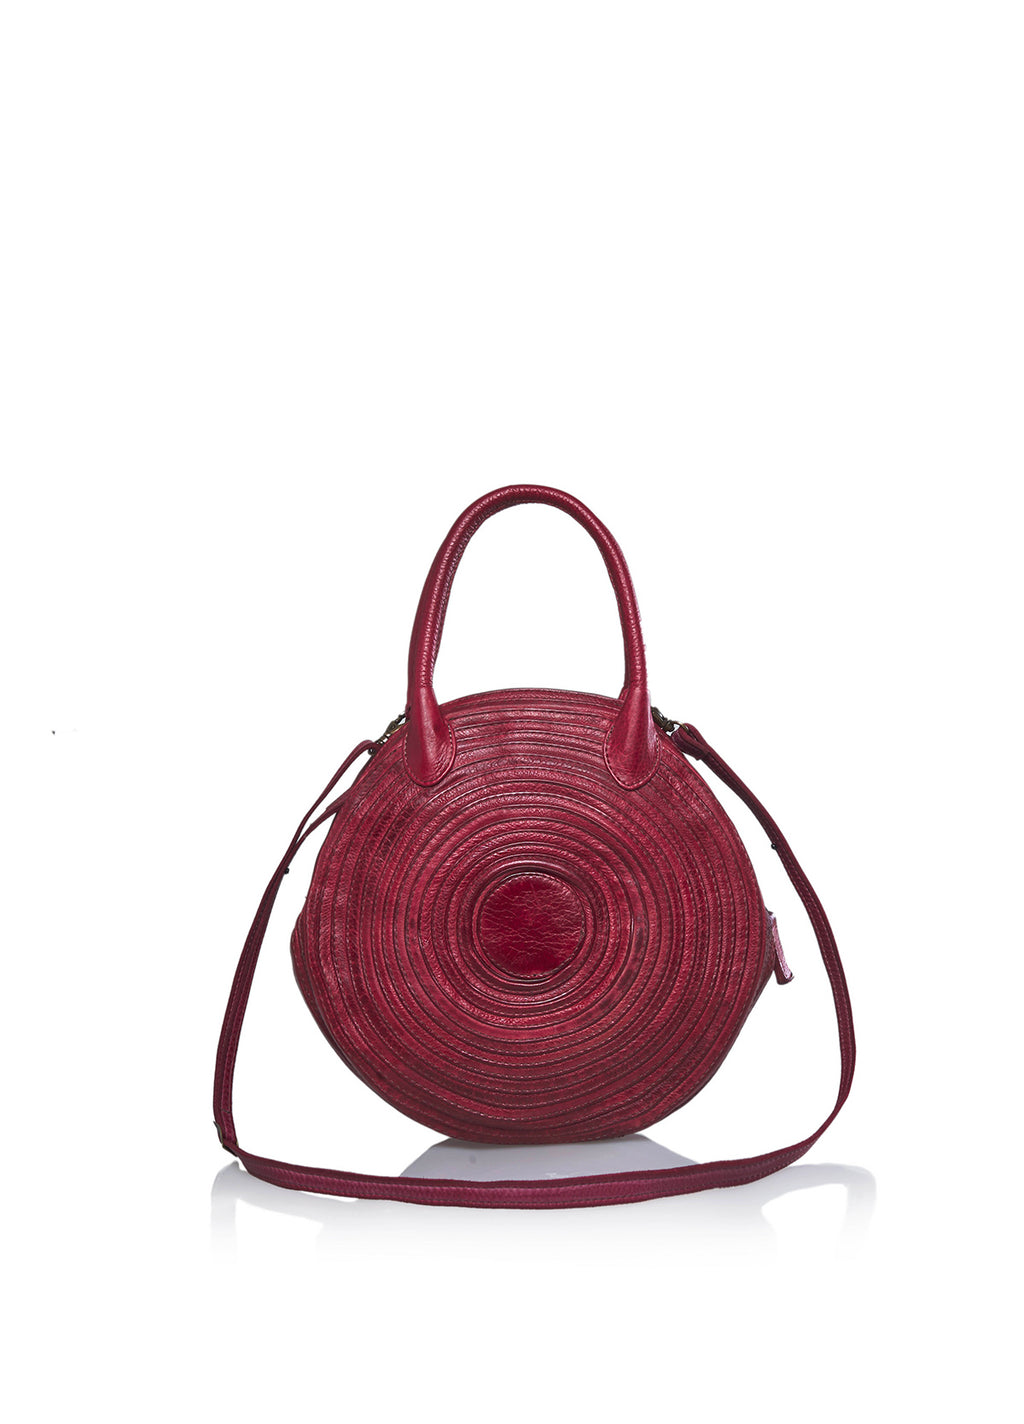 Bohk 465, shoulder bag - pelle di vitello, fodera in cotone, due tasche interne e chiusura con zip - vista frontale